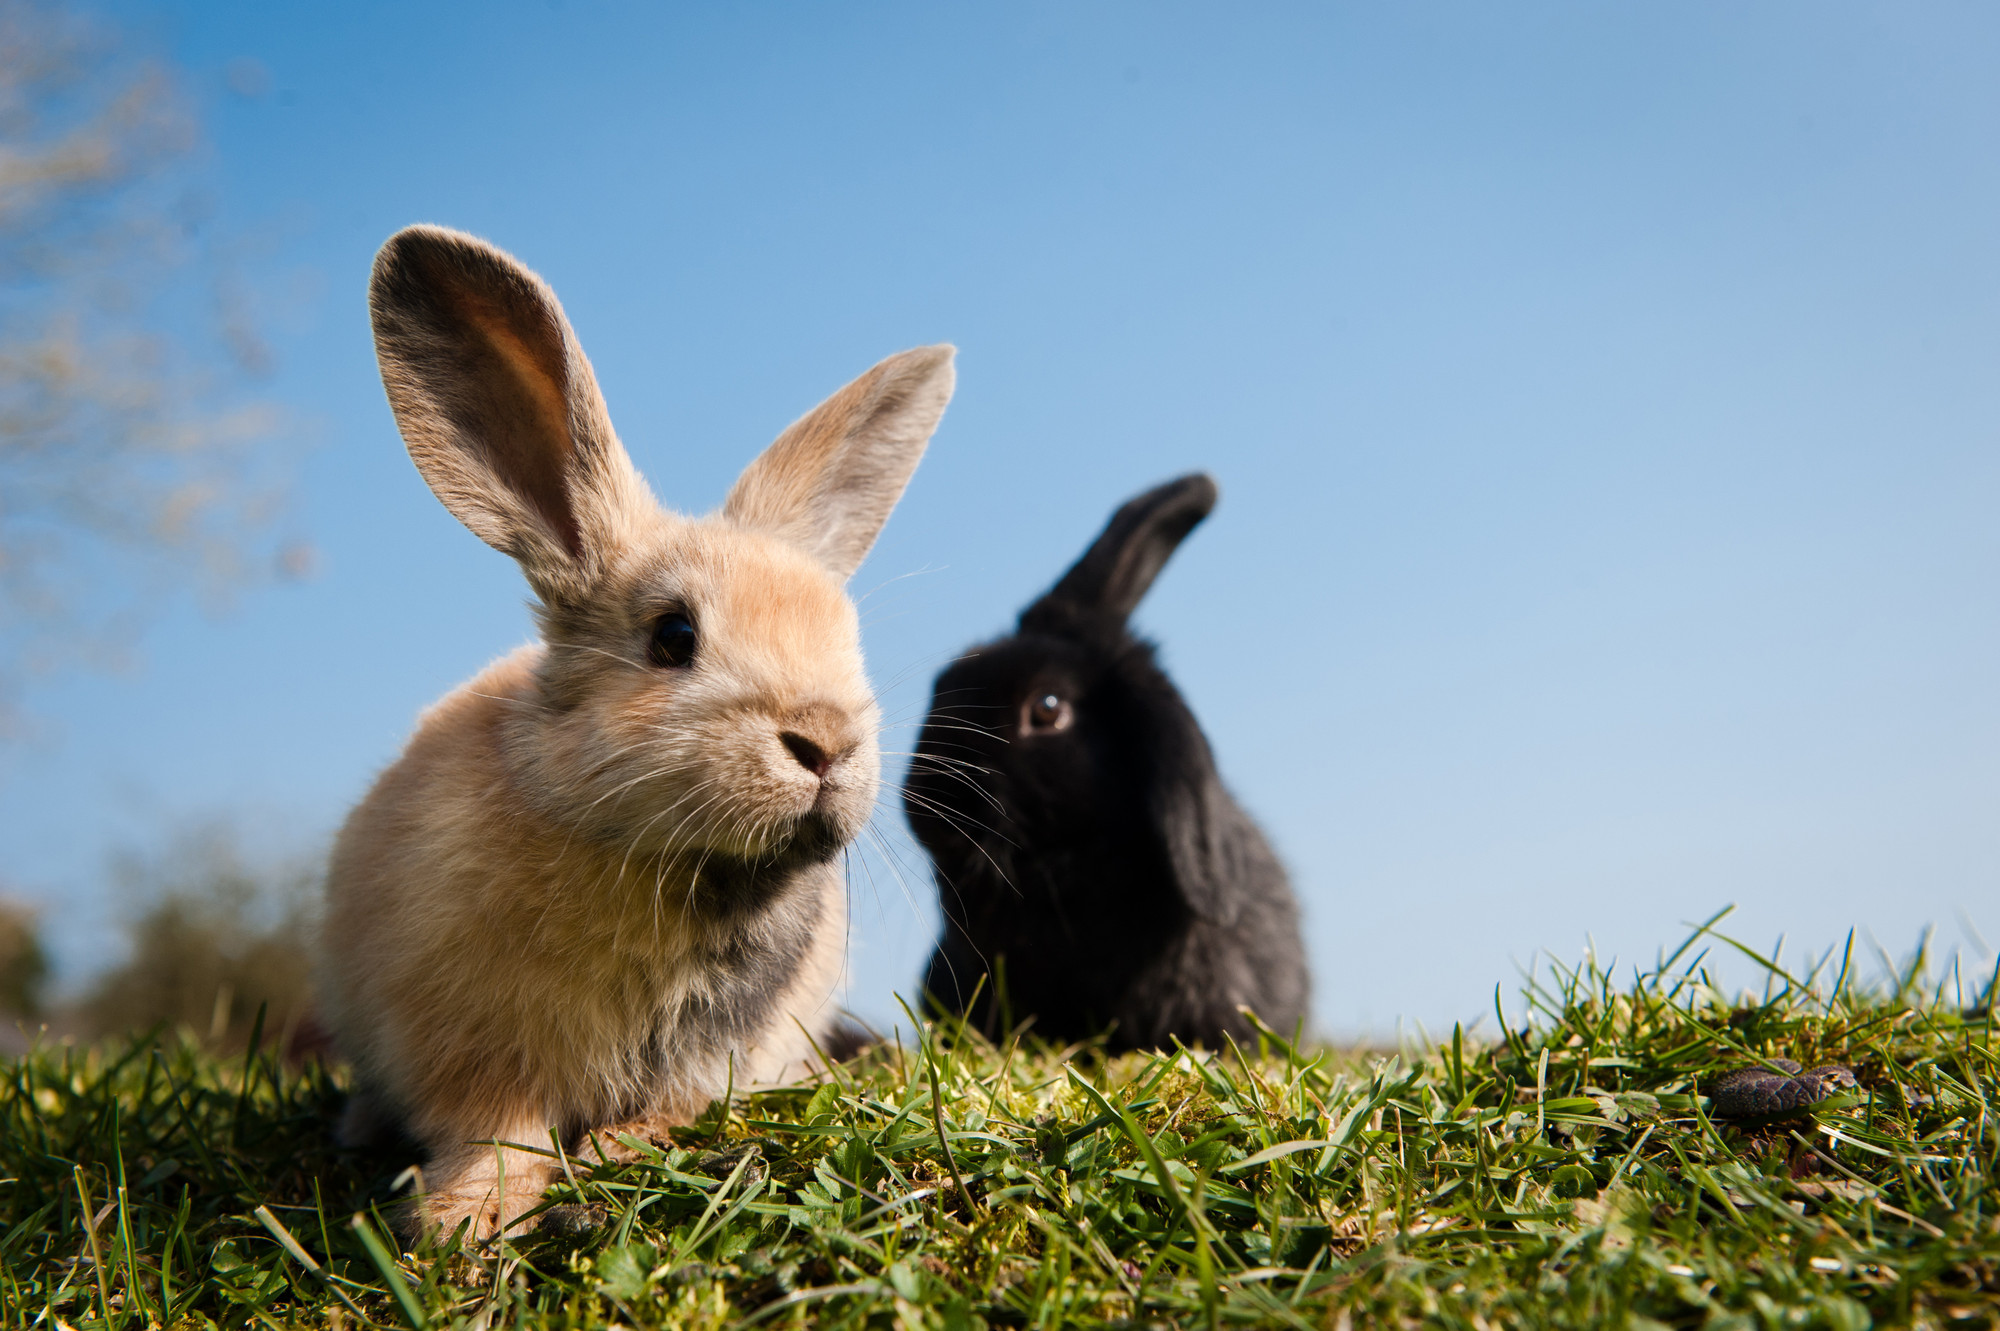 How to look after a rabbit   Behavioural tips   Blue Cross